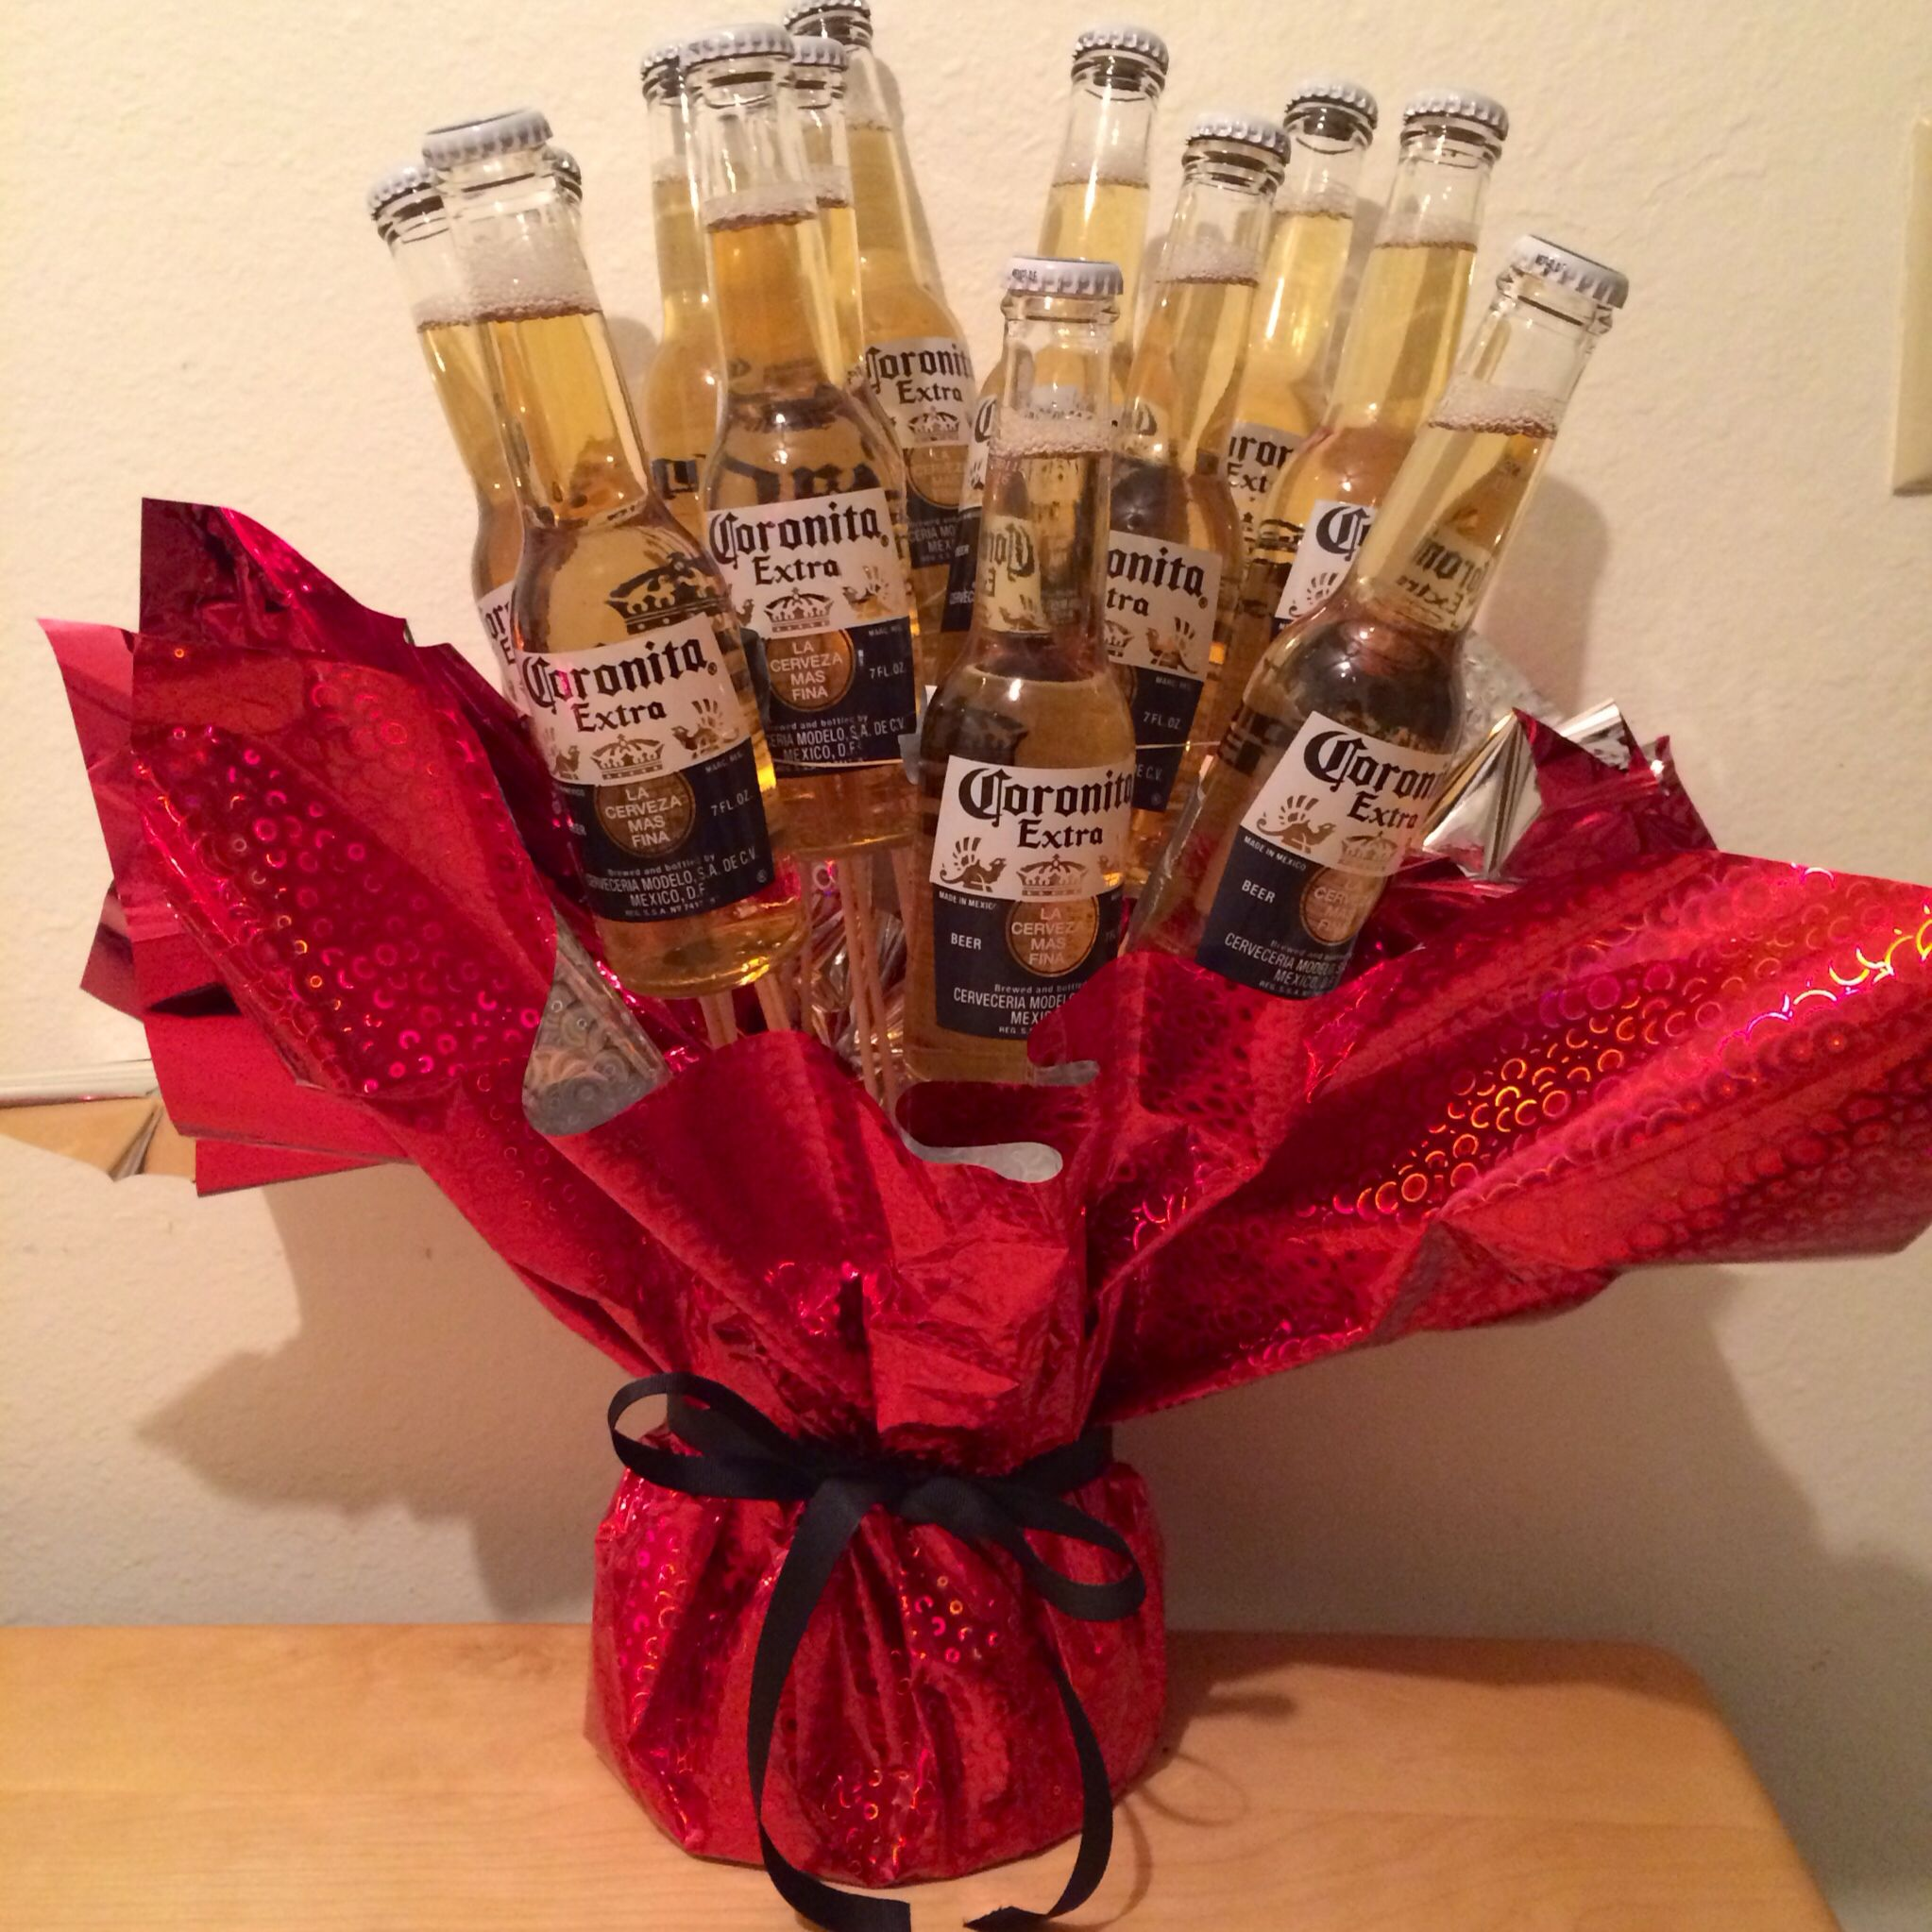 Made This Bouquet Of Beer For My Boyfriend For Valentines Day Valentines Beer Beer Bouquet Liquor Bouquet